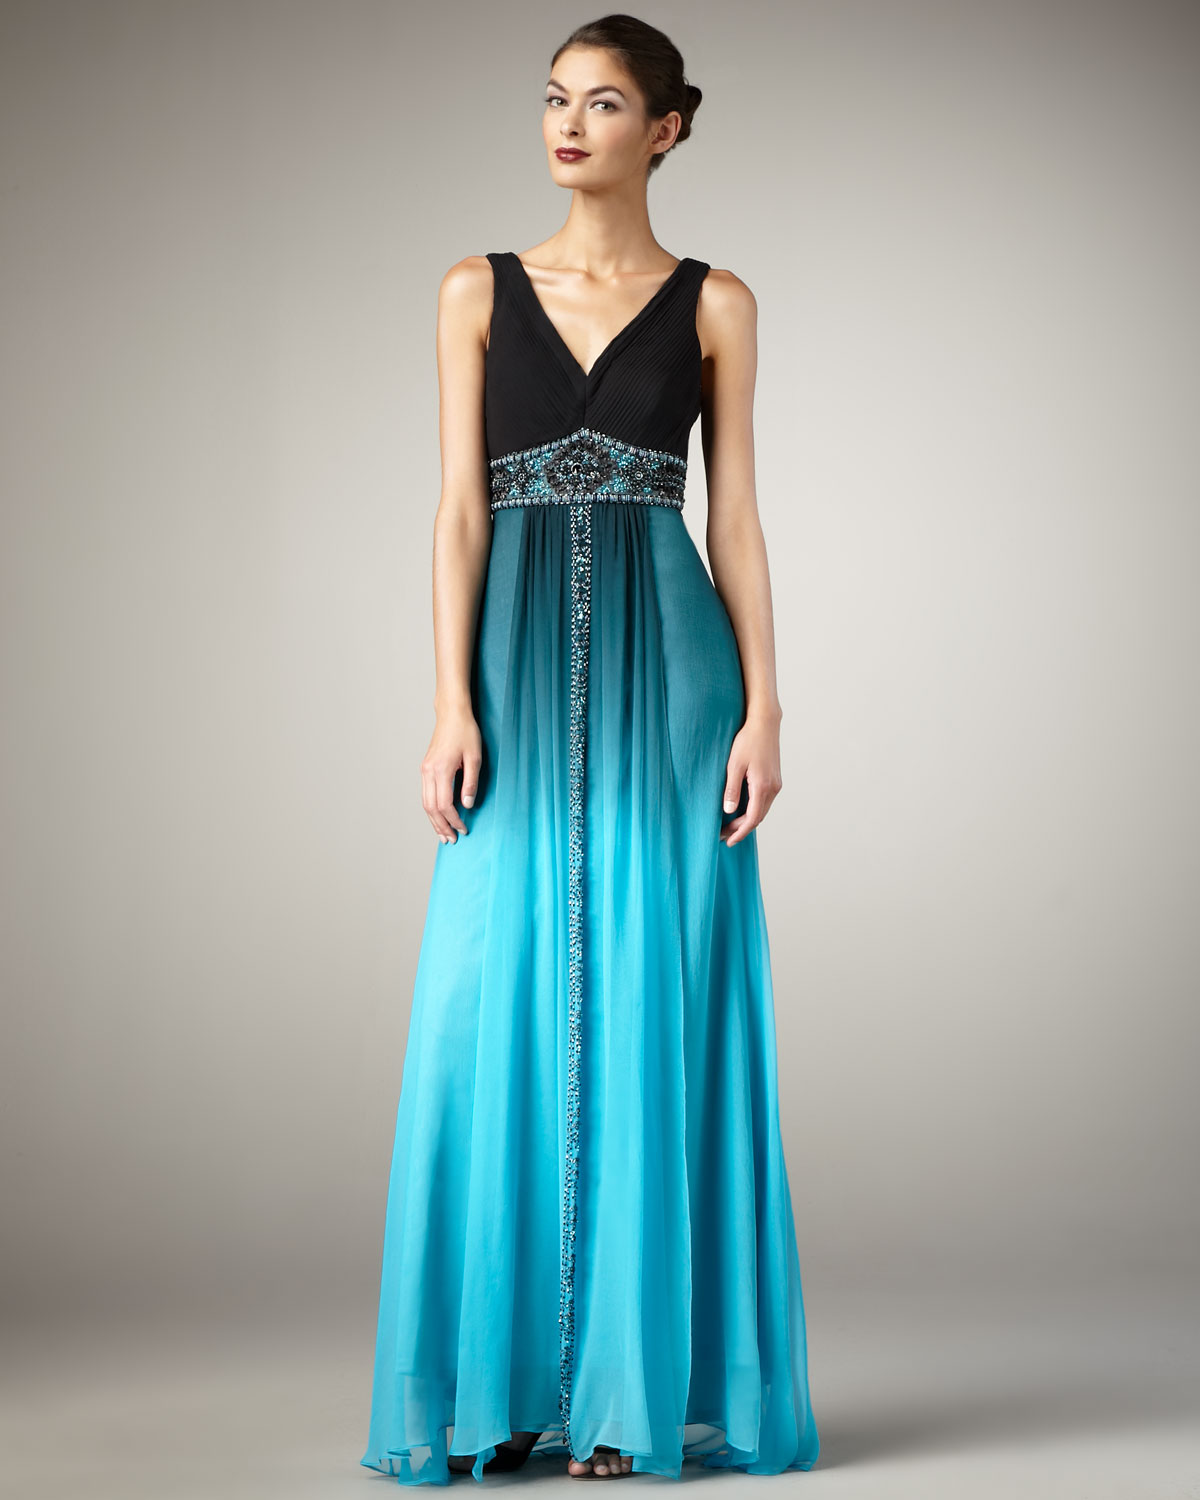 87bd2fd59b Turquoise And Black Dress - Dress Foto and Picture